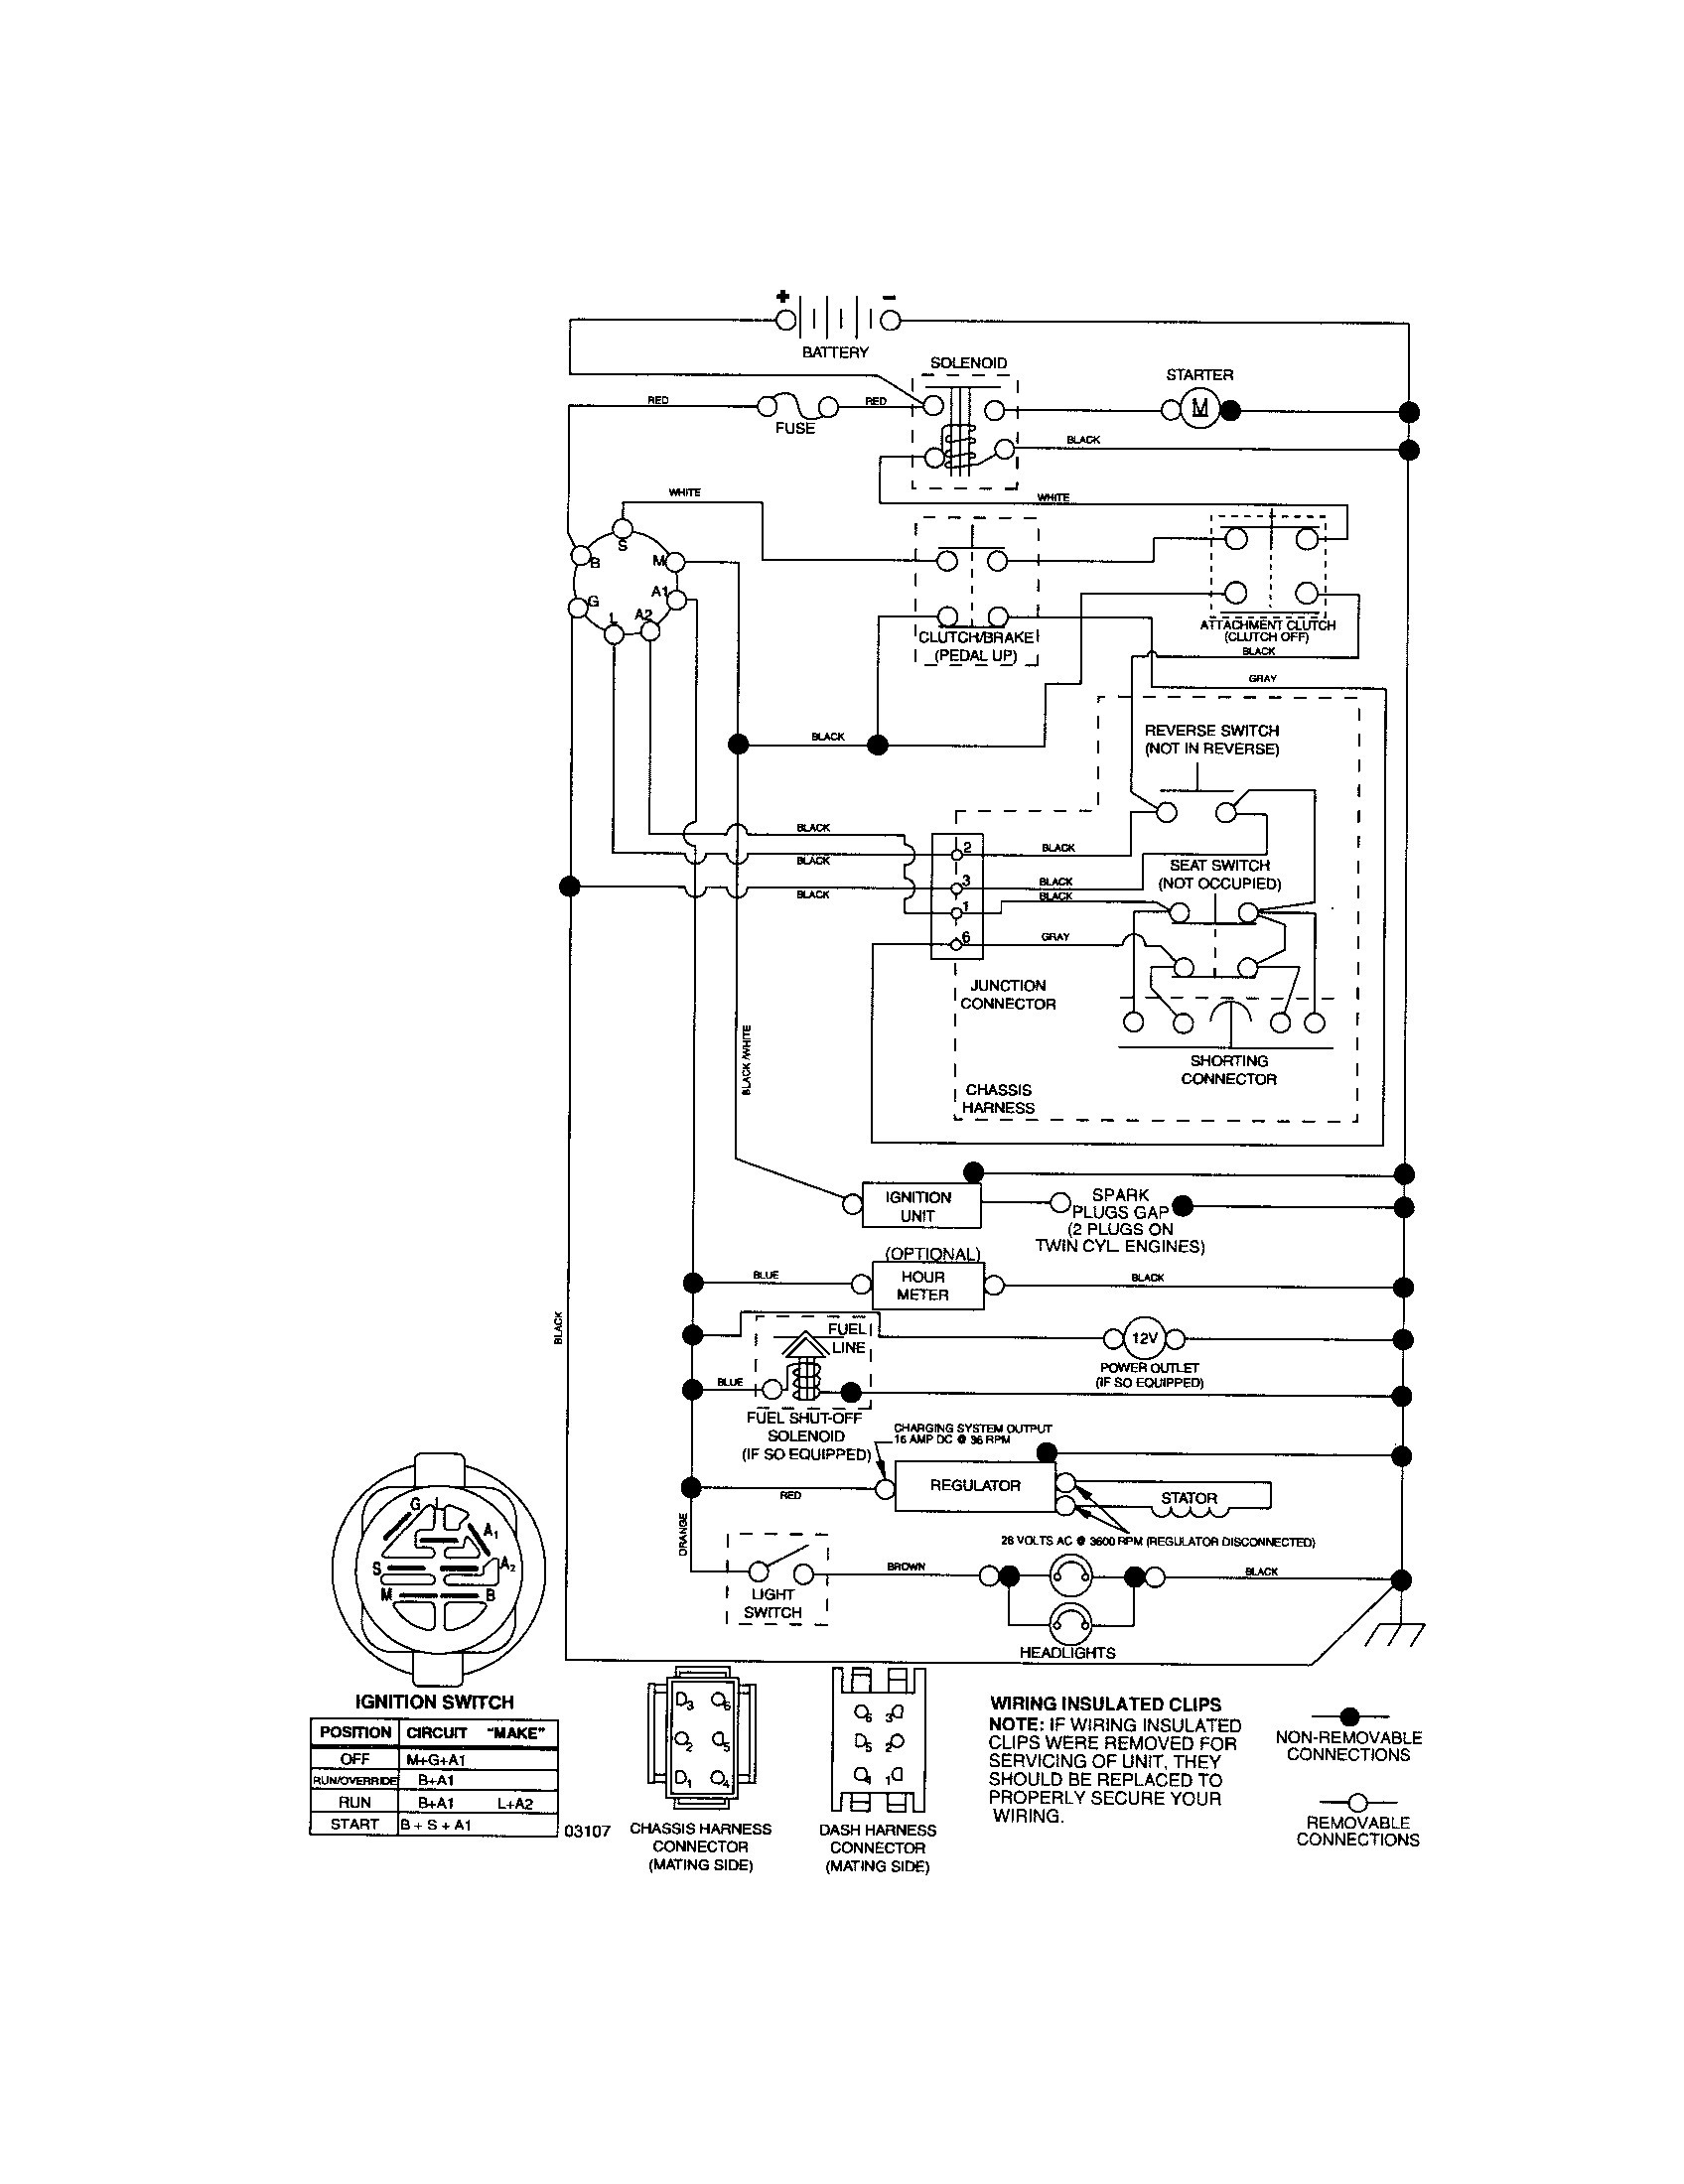 ... yard machine wiring diagram wiring diagram image Troy-Bilt Lawn Tractor  Wiring Diagram mtd wiring